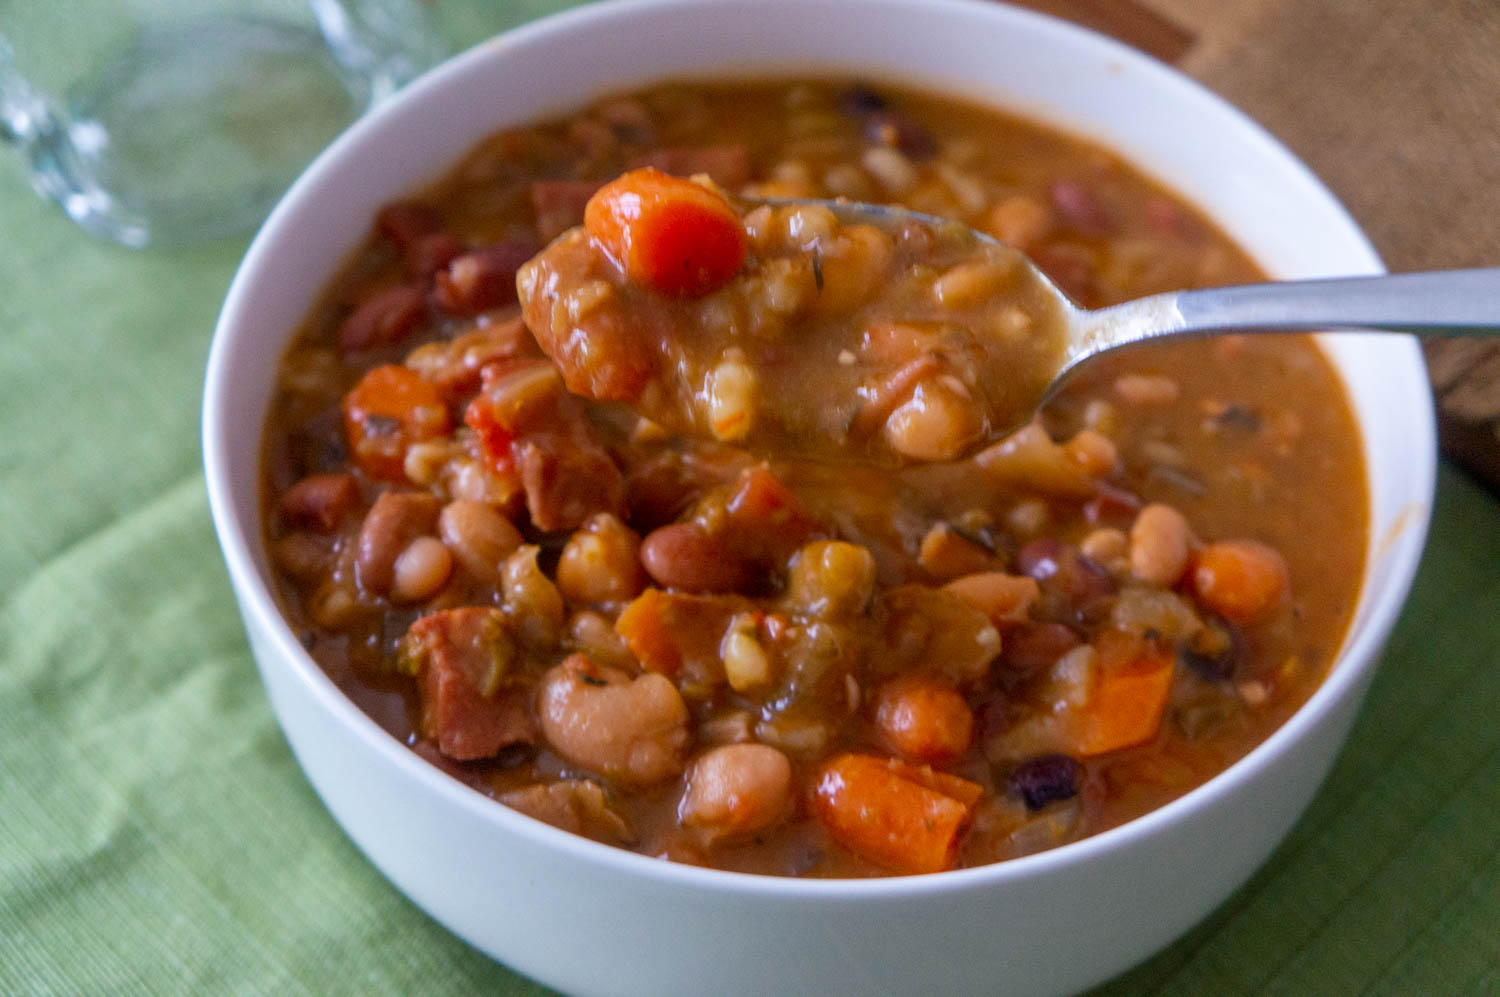 16 Beans and Ham Soup